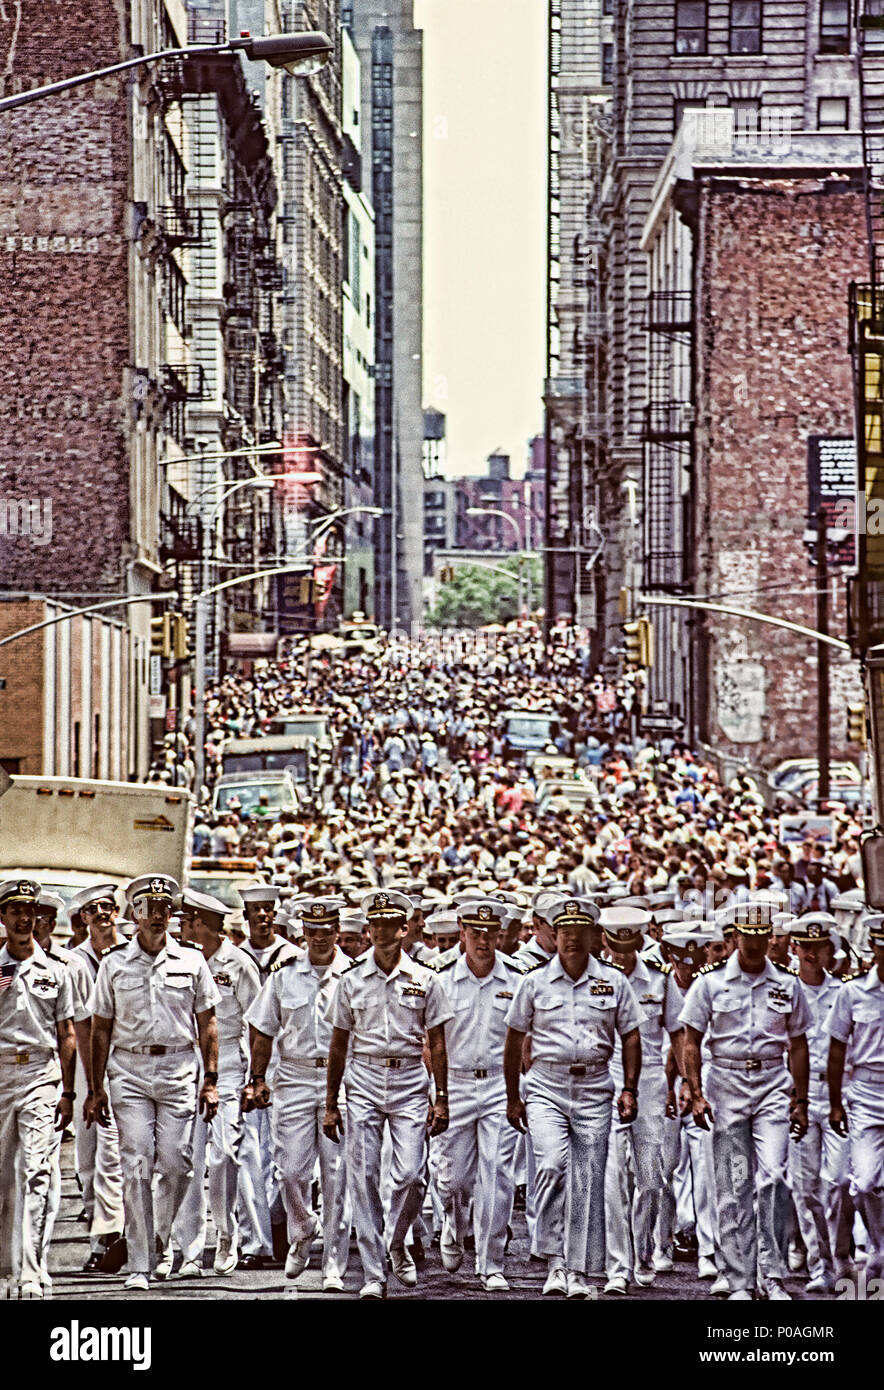 First Iraq war NYC ticker tape parade with the sailors marching down in the wall street area - Stock Image